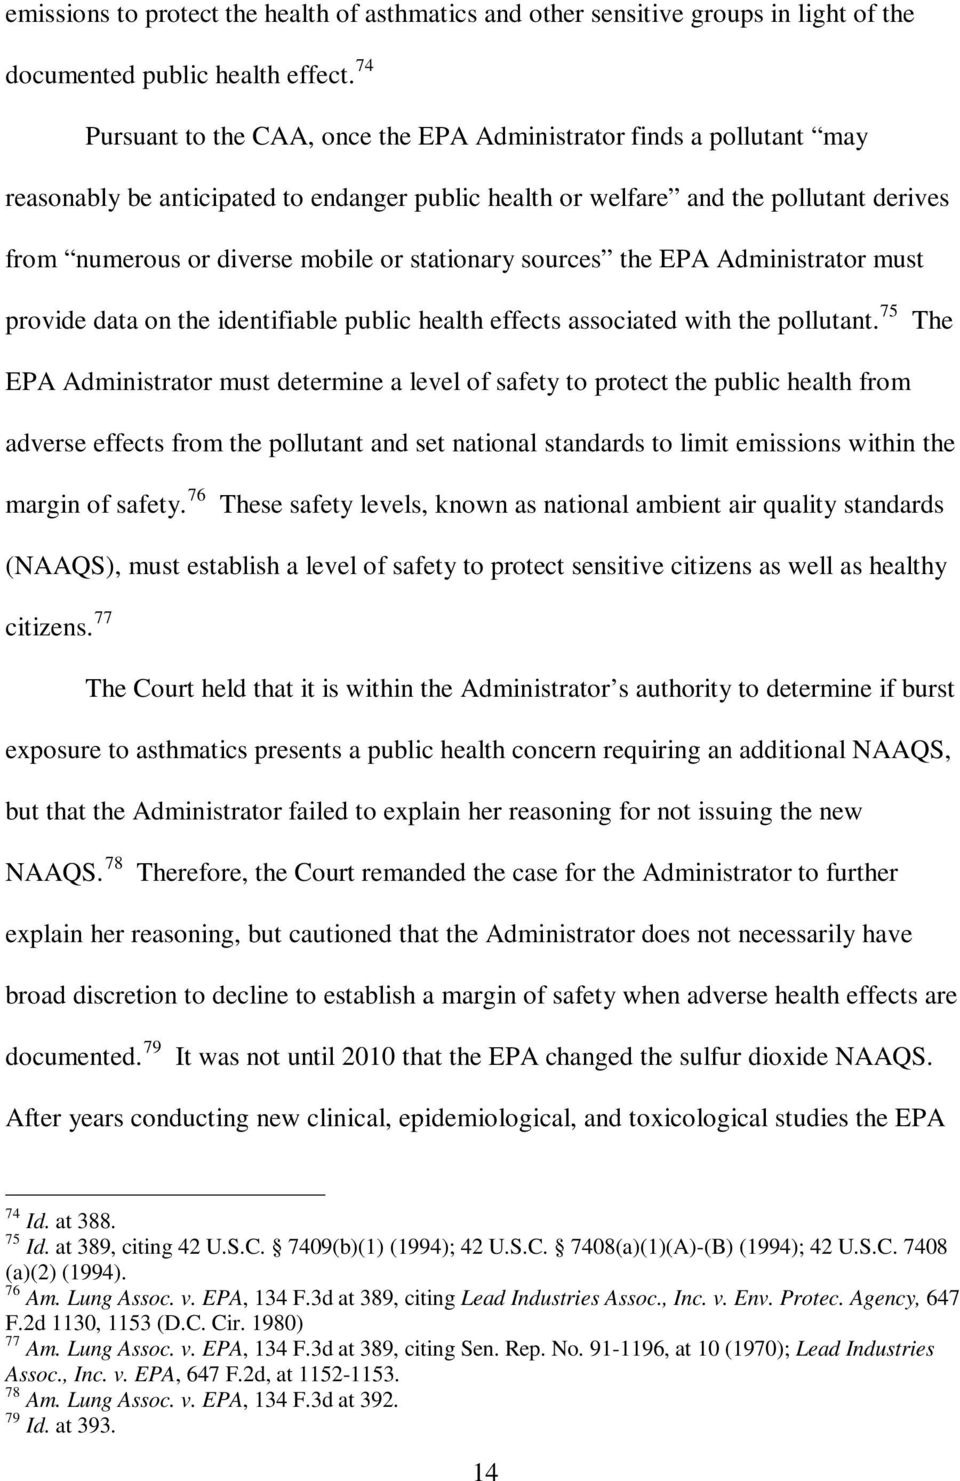 stationary sources the EPA Administrator must provide data on the identifiable public health effects associated with the pollutant.